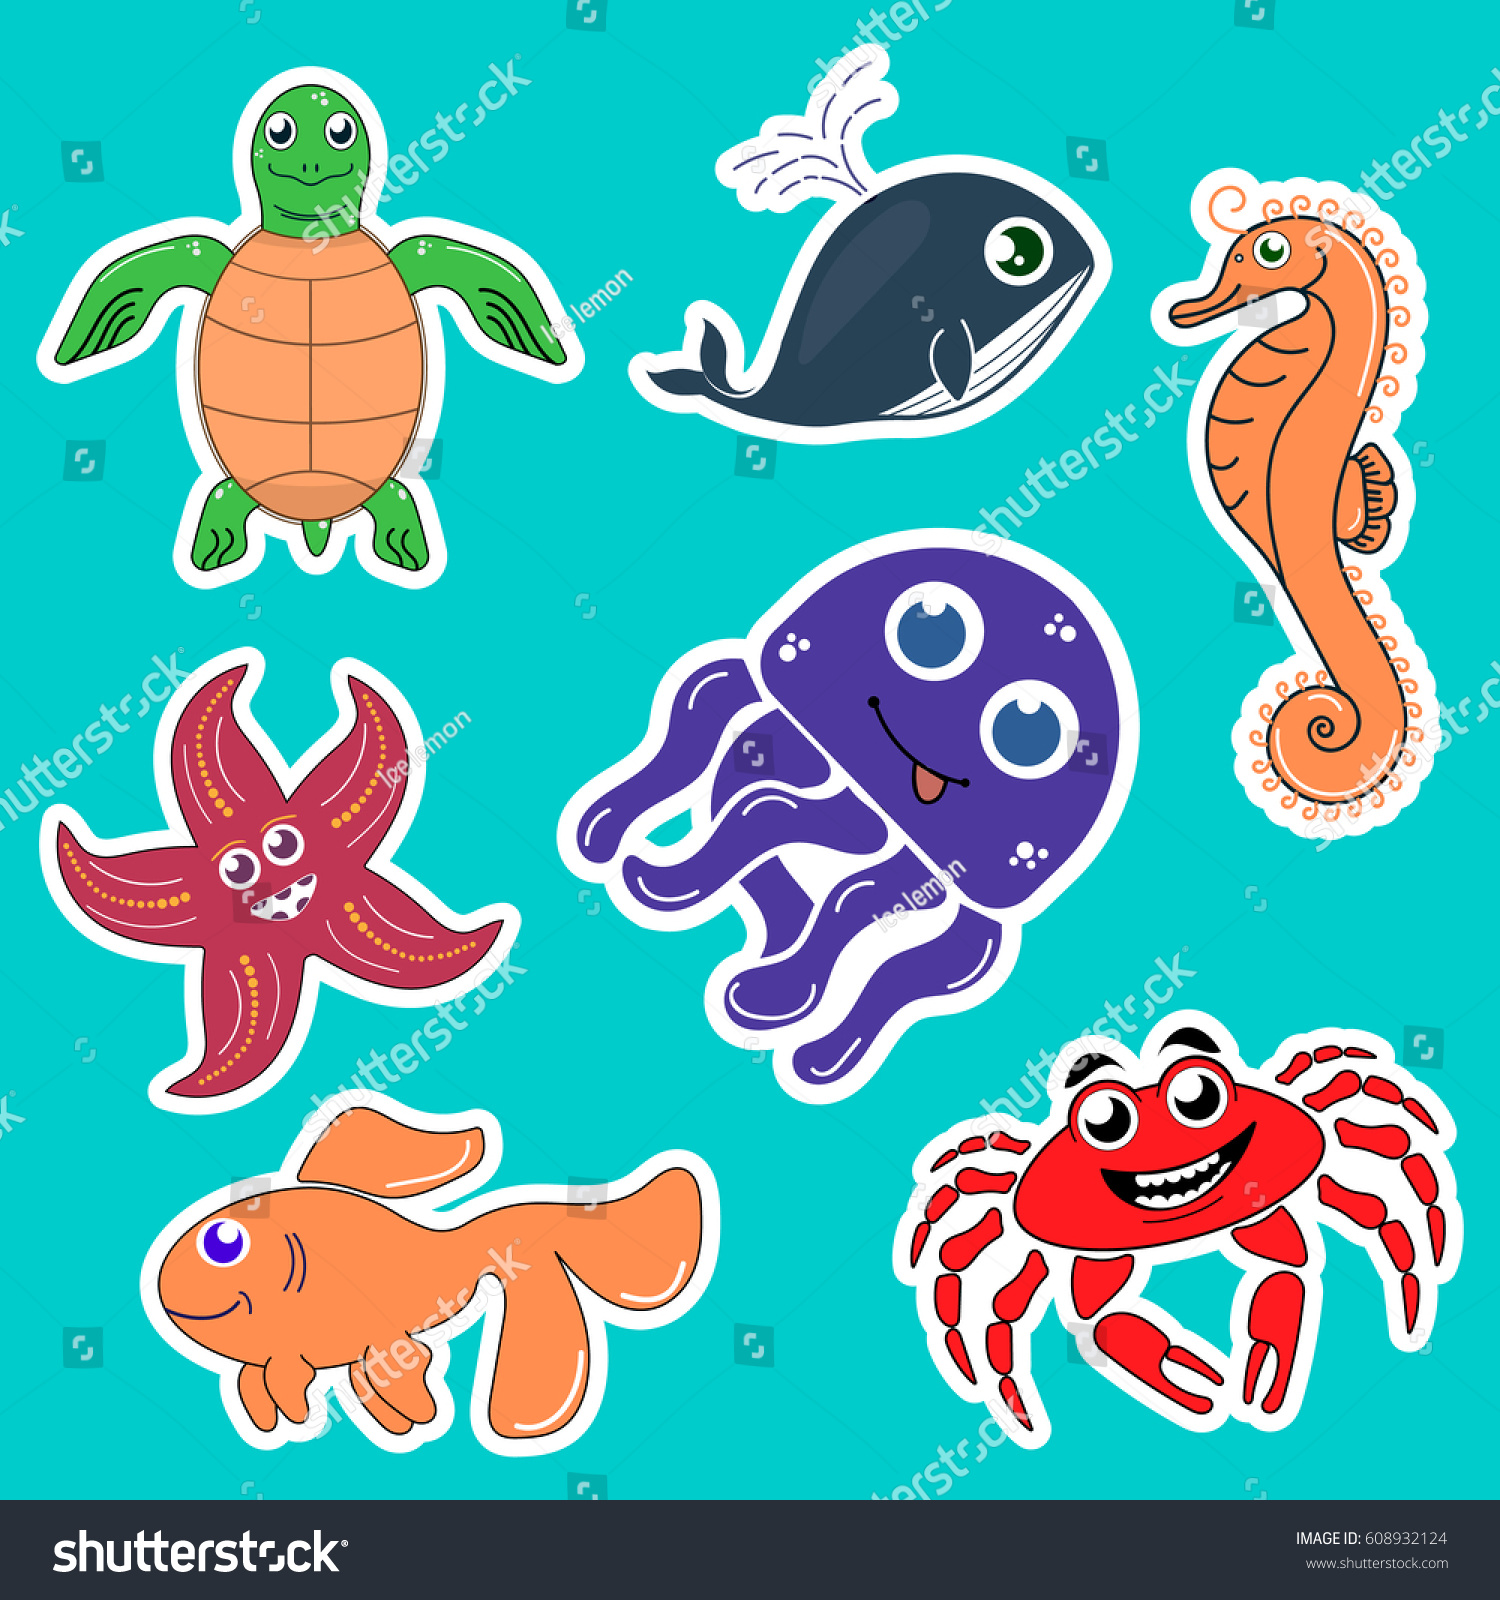 Stickers sea creatures turtle starfish whale goldfish crab octopus seahorse